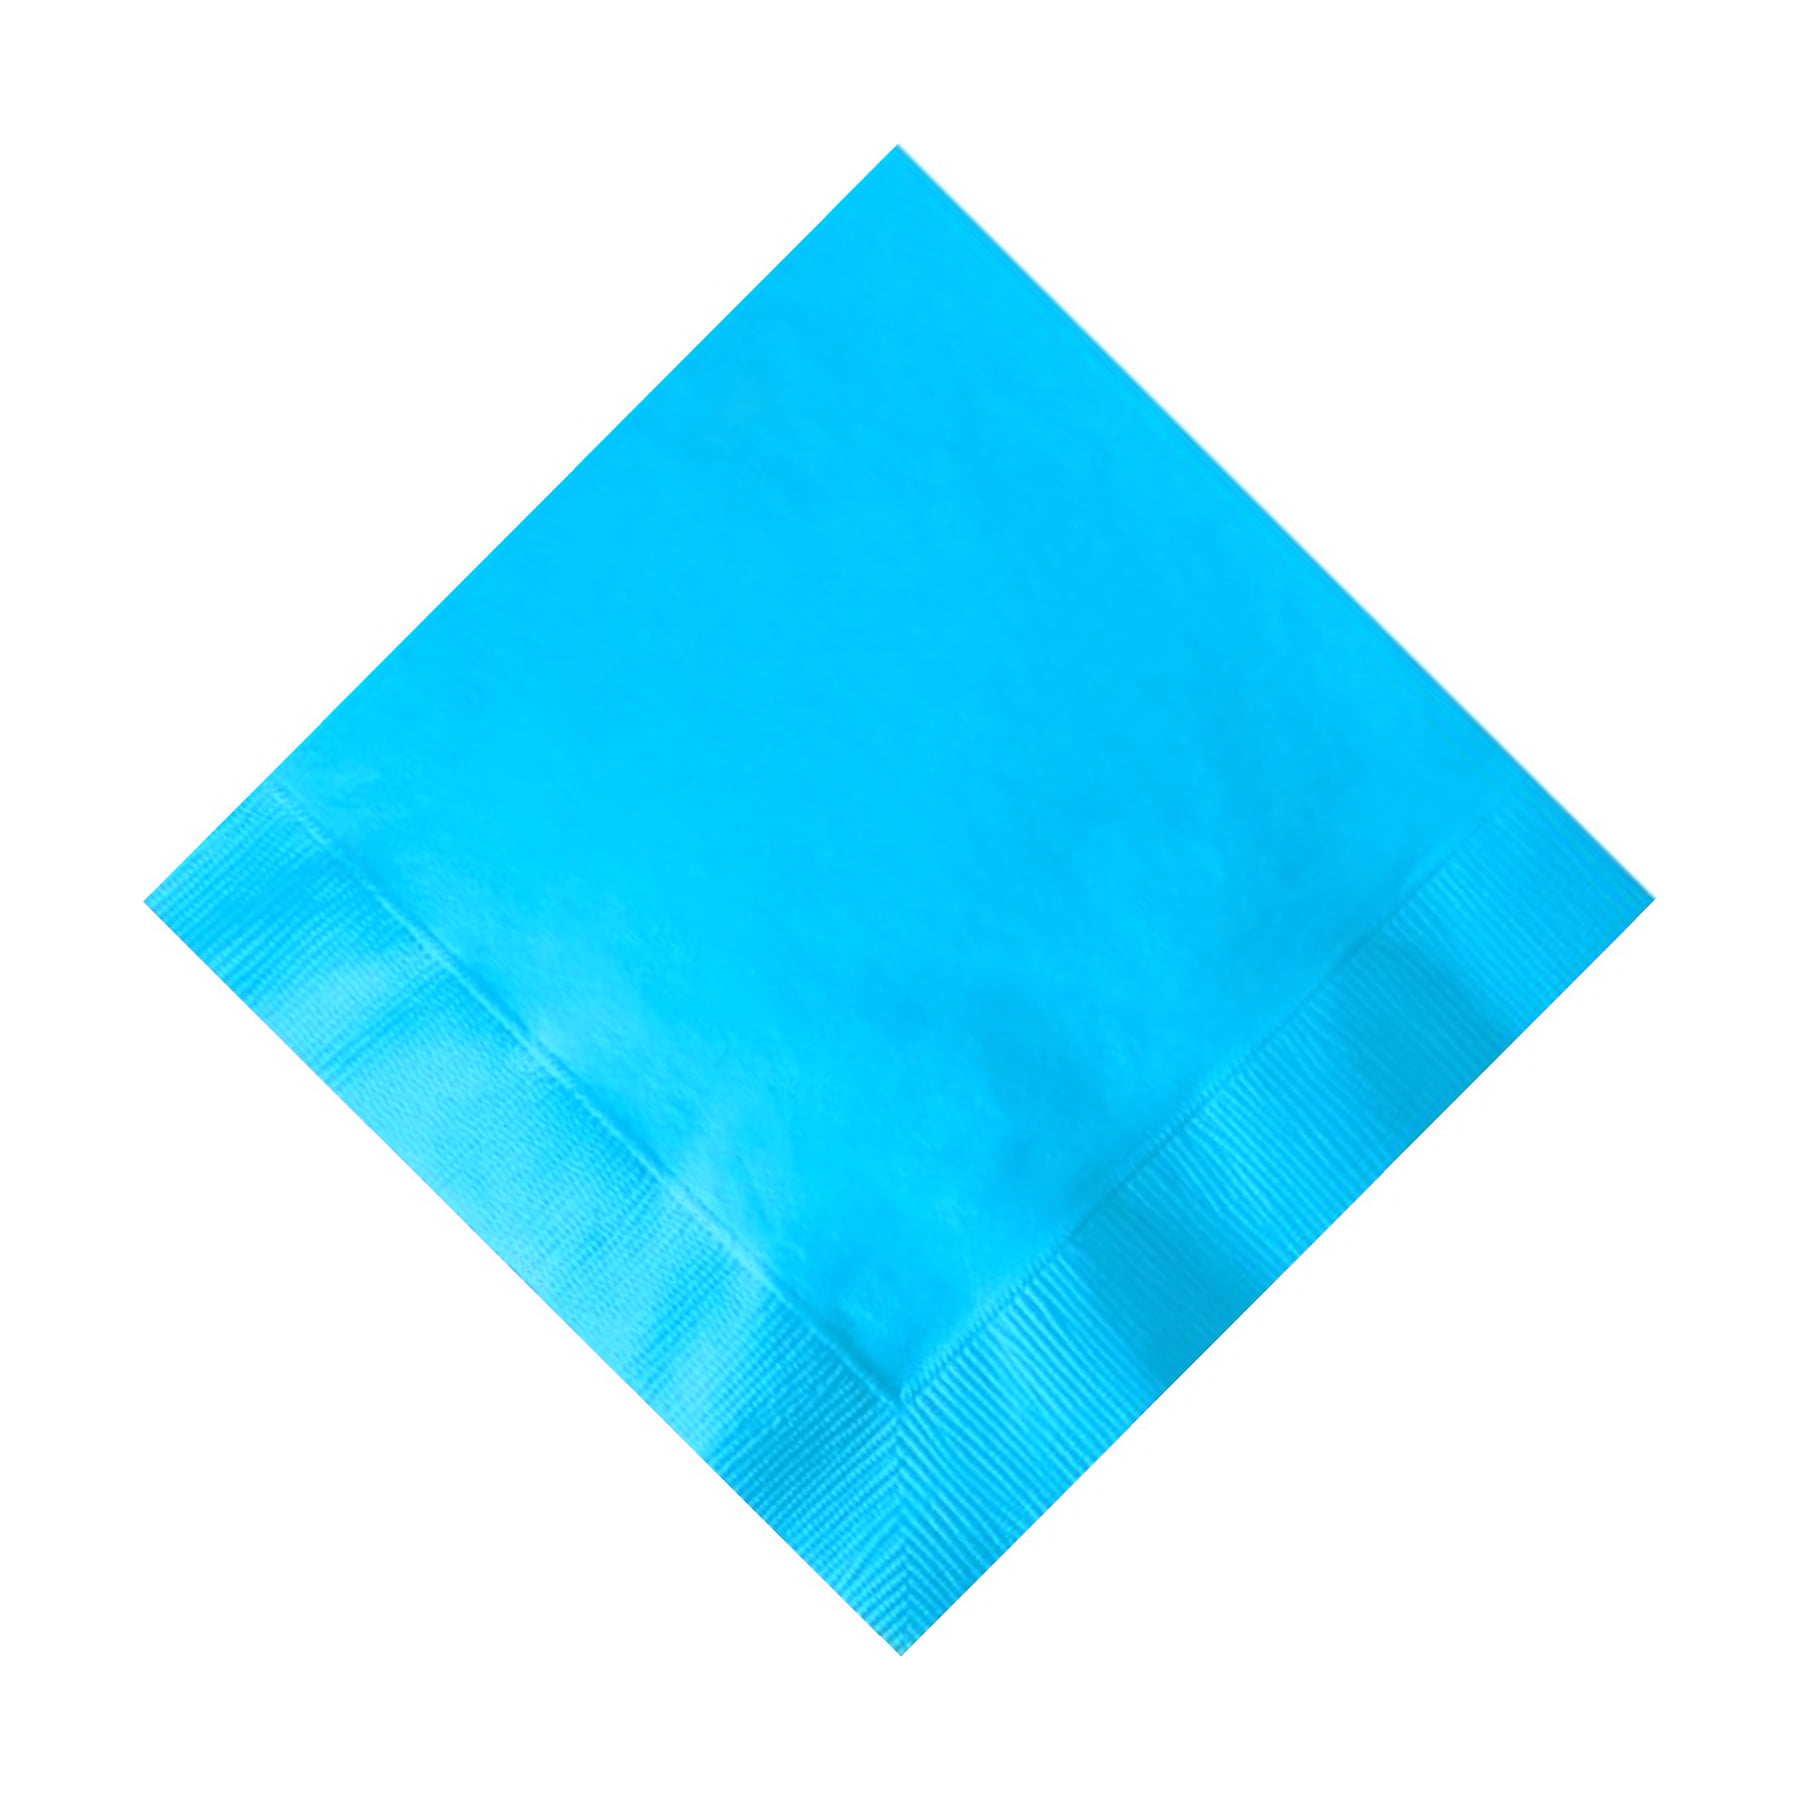 50 Plain Solid Colors Beverage Cocktail Napkins Paper Bermuda Blue by CREATIVE CONVERTING